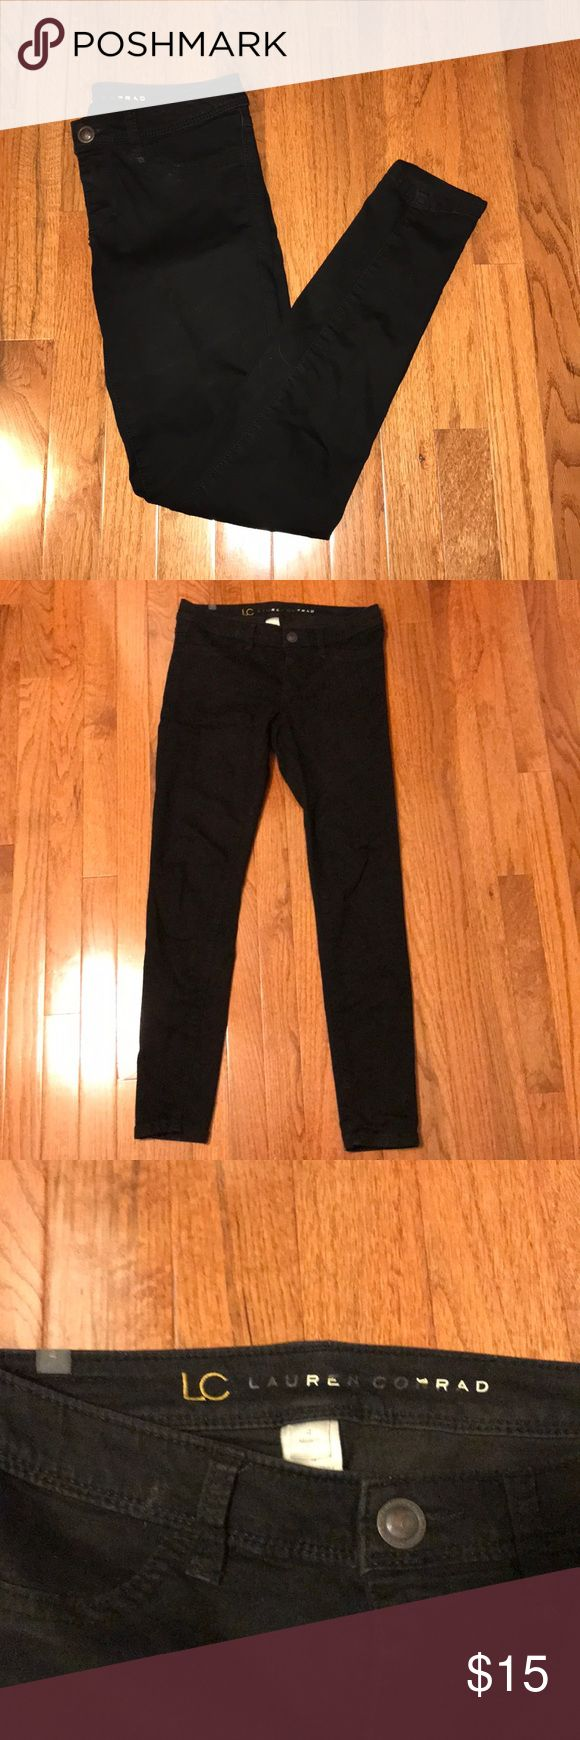 LC Lauren Conrad Black Jeggings These are size 4 Black Jeggings by LC Lauren Conrad. Purchased from Kohl's. The lettering on the inside logo of the pants is peeling off but obviously can't tell when being worn since it's on the inside of the waistband. Other than that there are no flaws. The front pockets are not functional but the back ones are. I have a dark wash version of these pants also listed. Lots of items under $10 to bundle with! LC Lauren Conrad Pants Leggings